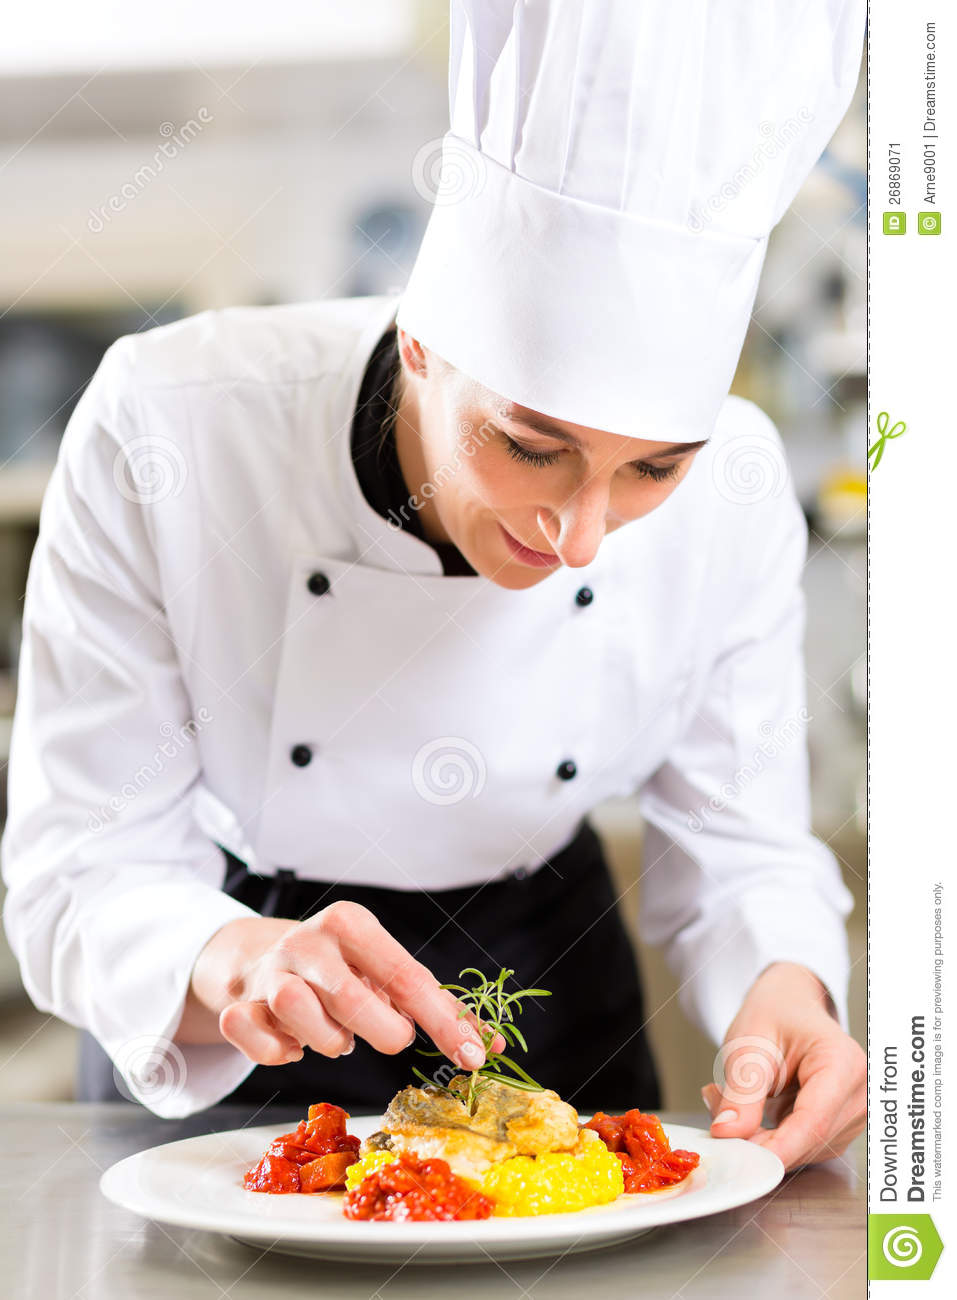 female-chef-restaurant-kitchen-cooking-26869071.jpg